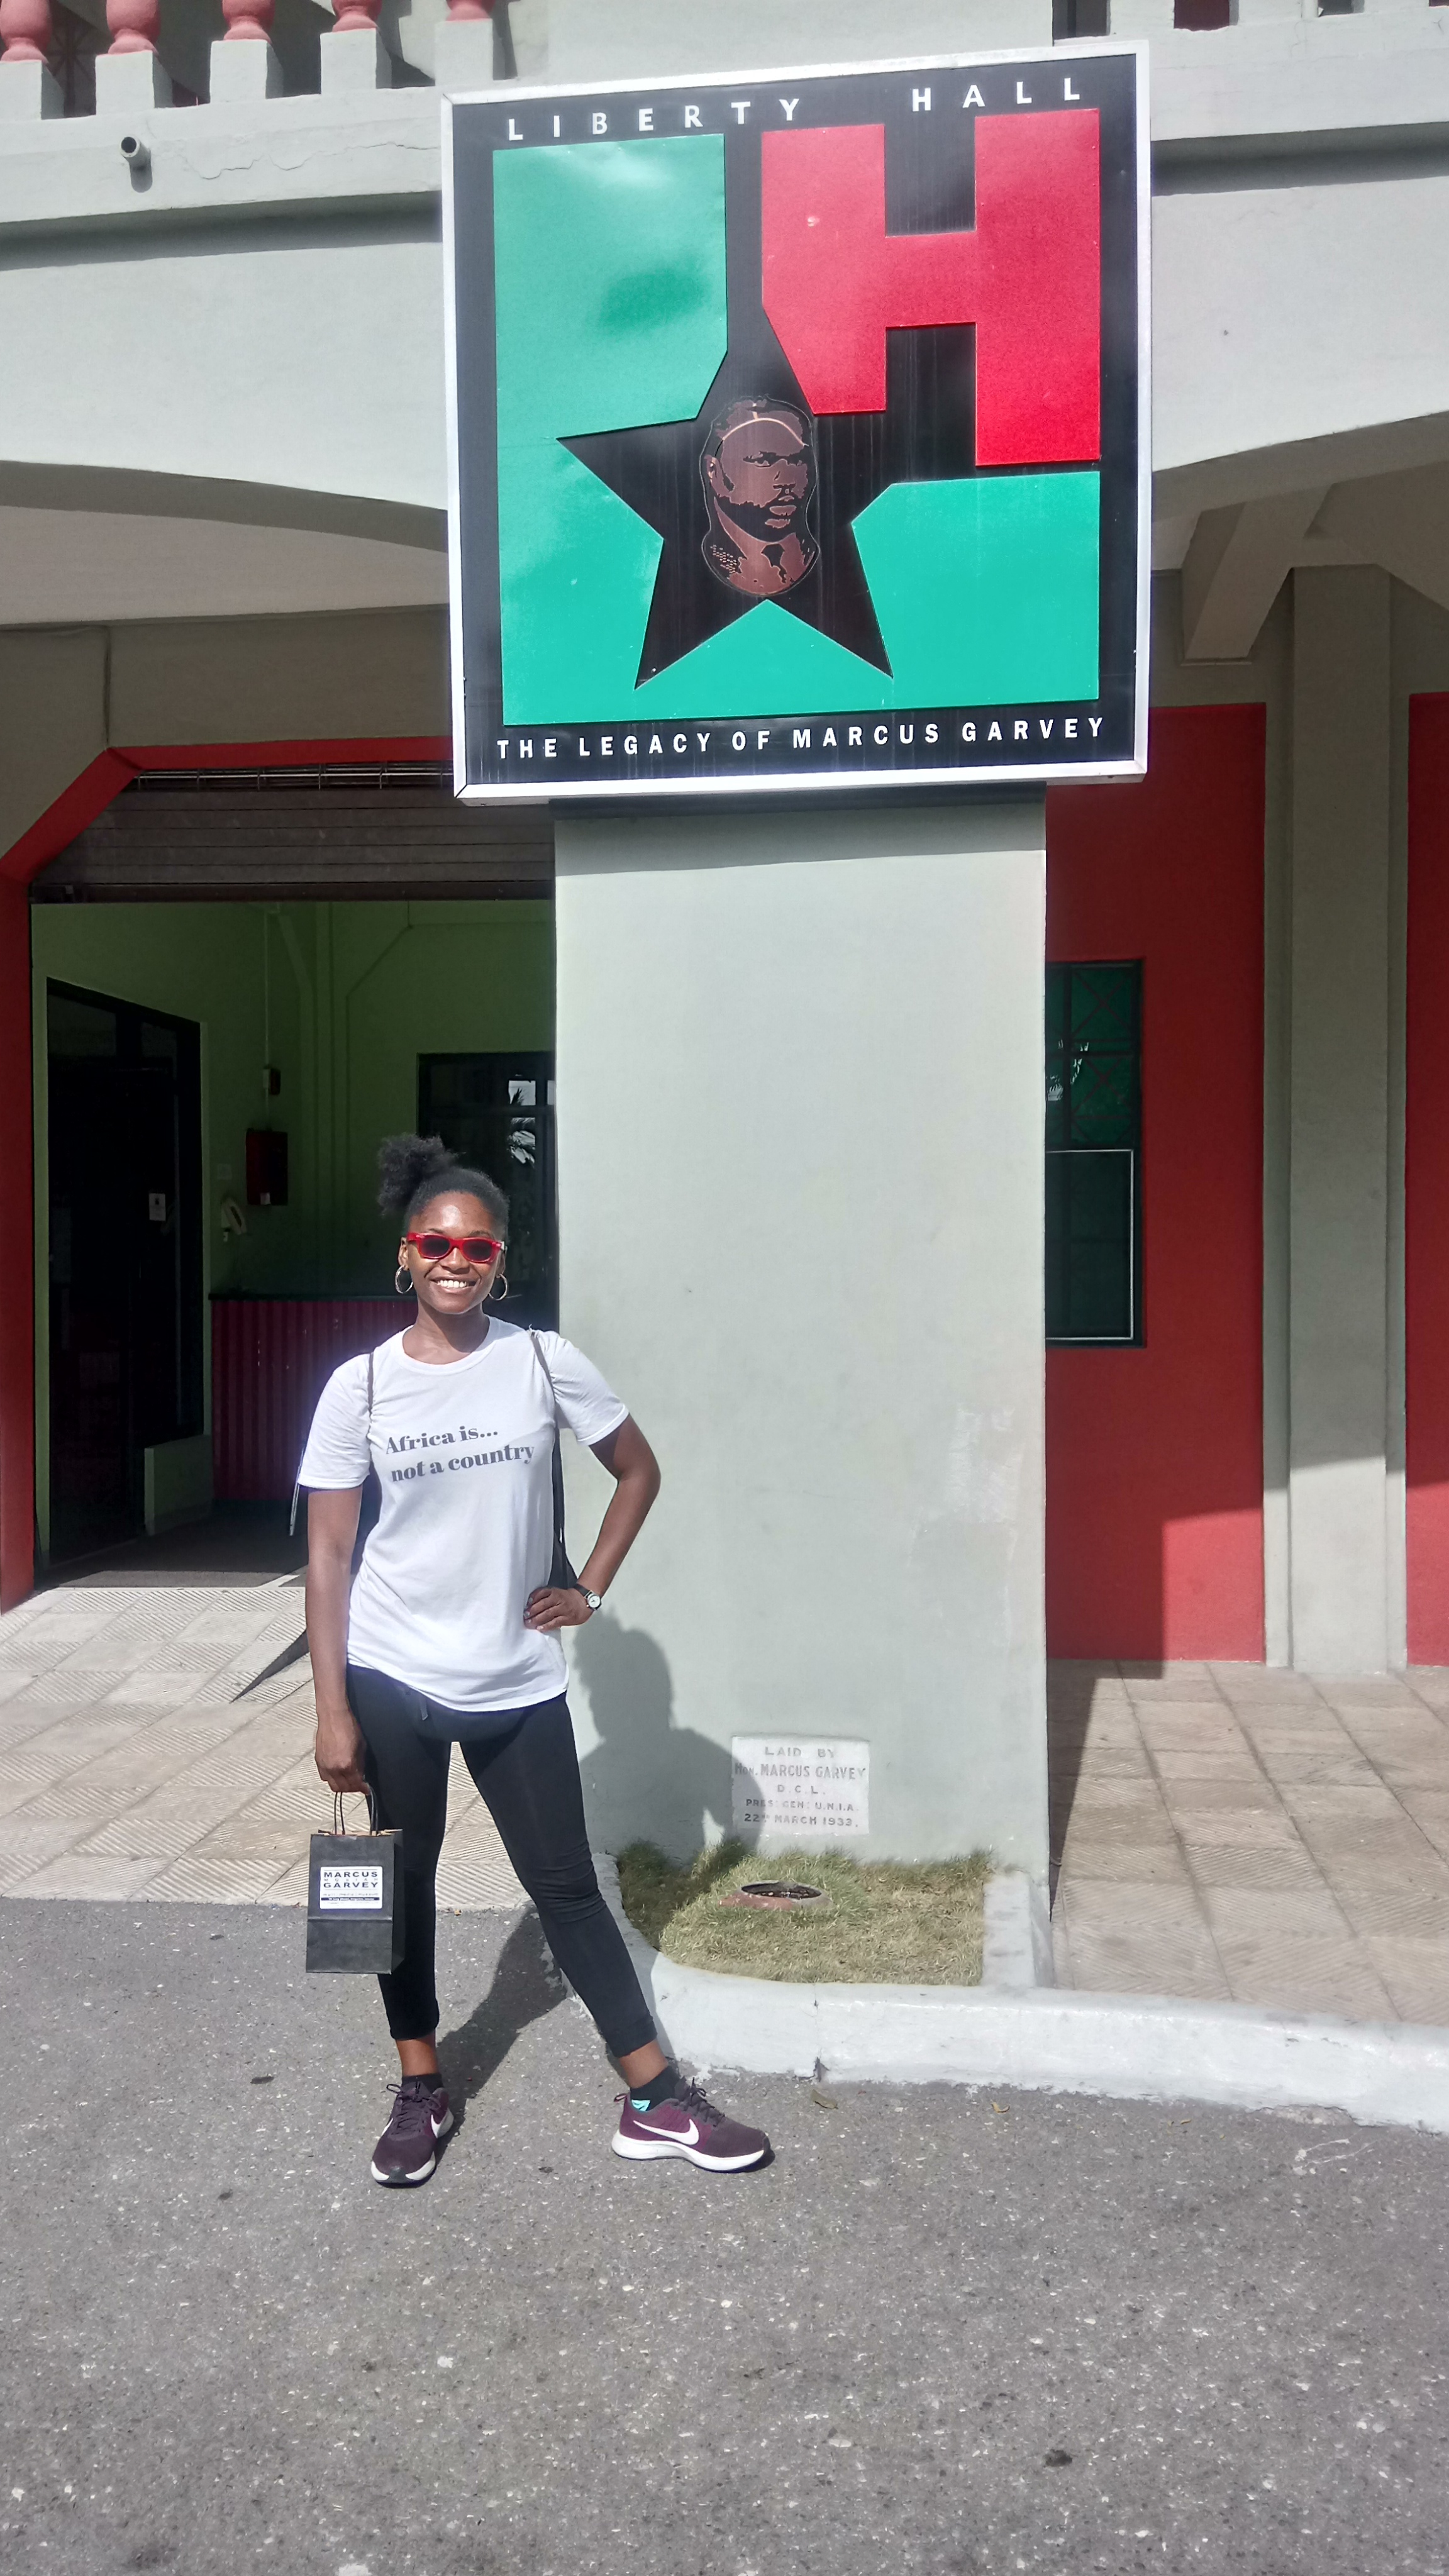 Liberty Hall - The Legacy of Marcus Garvey